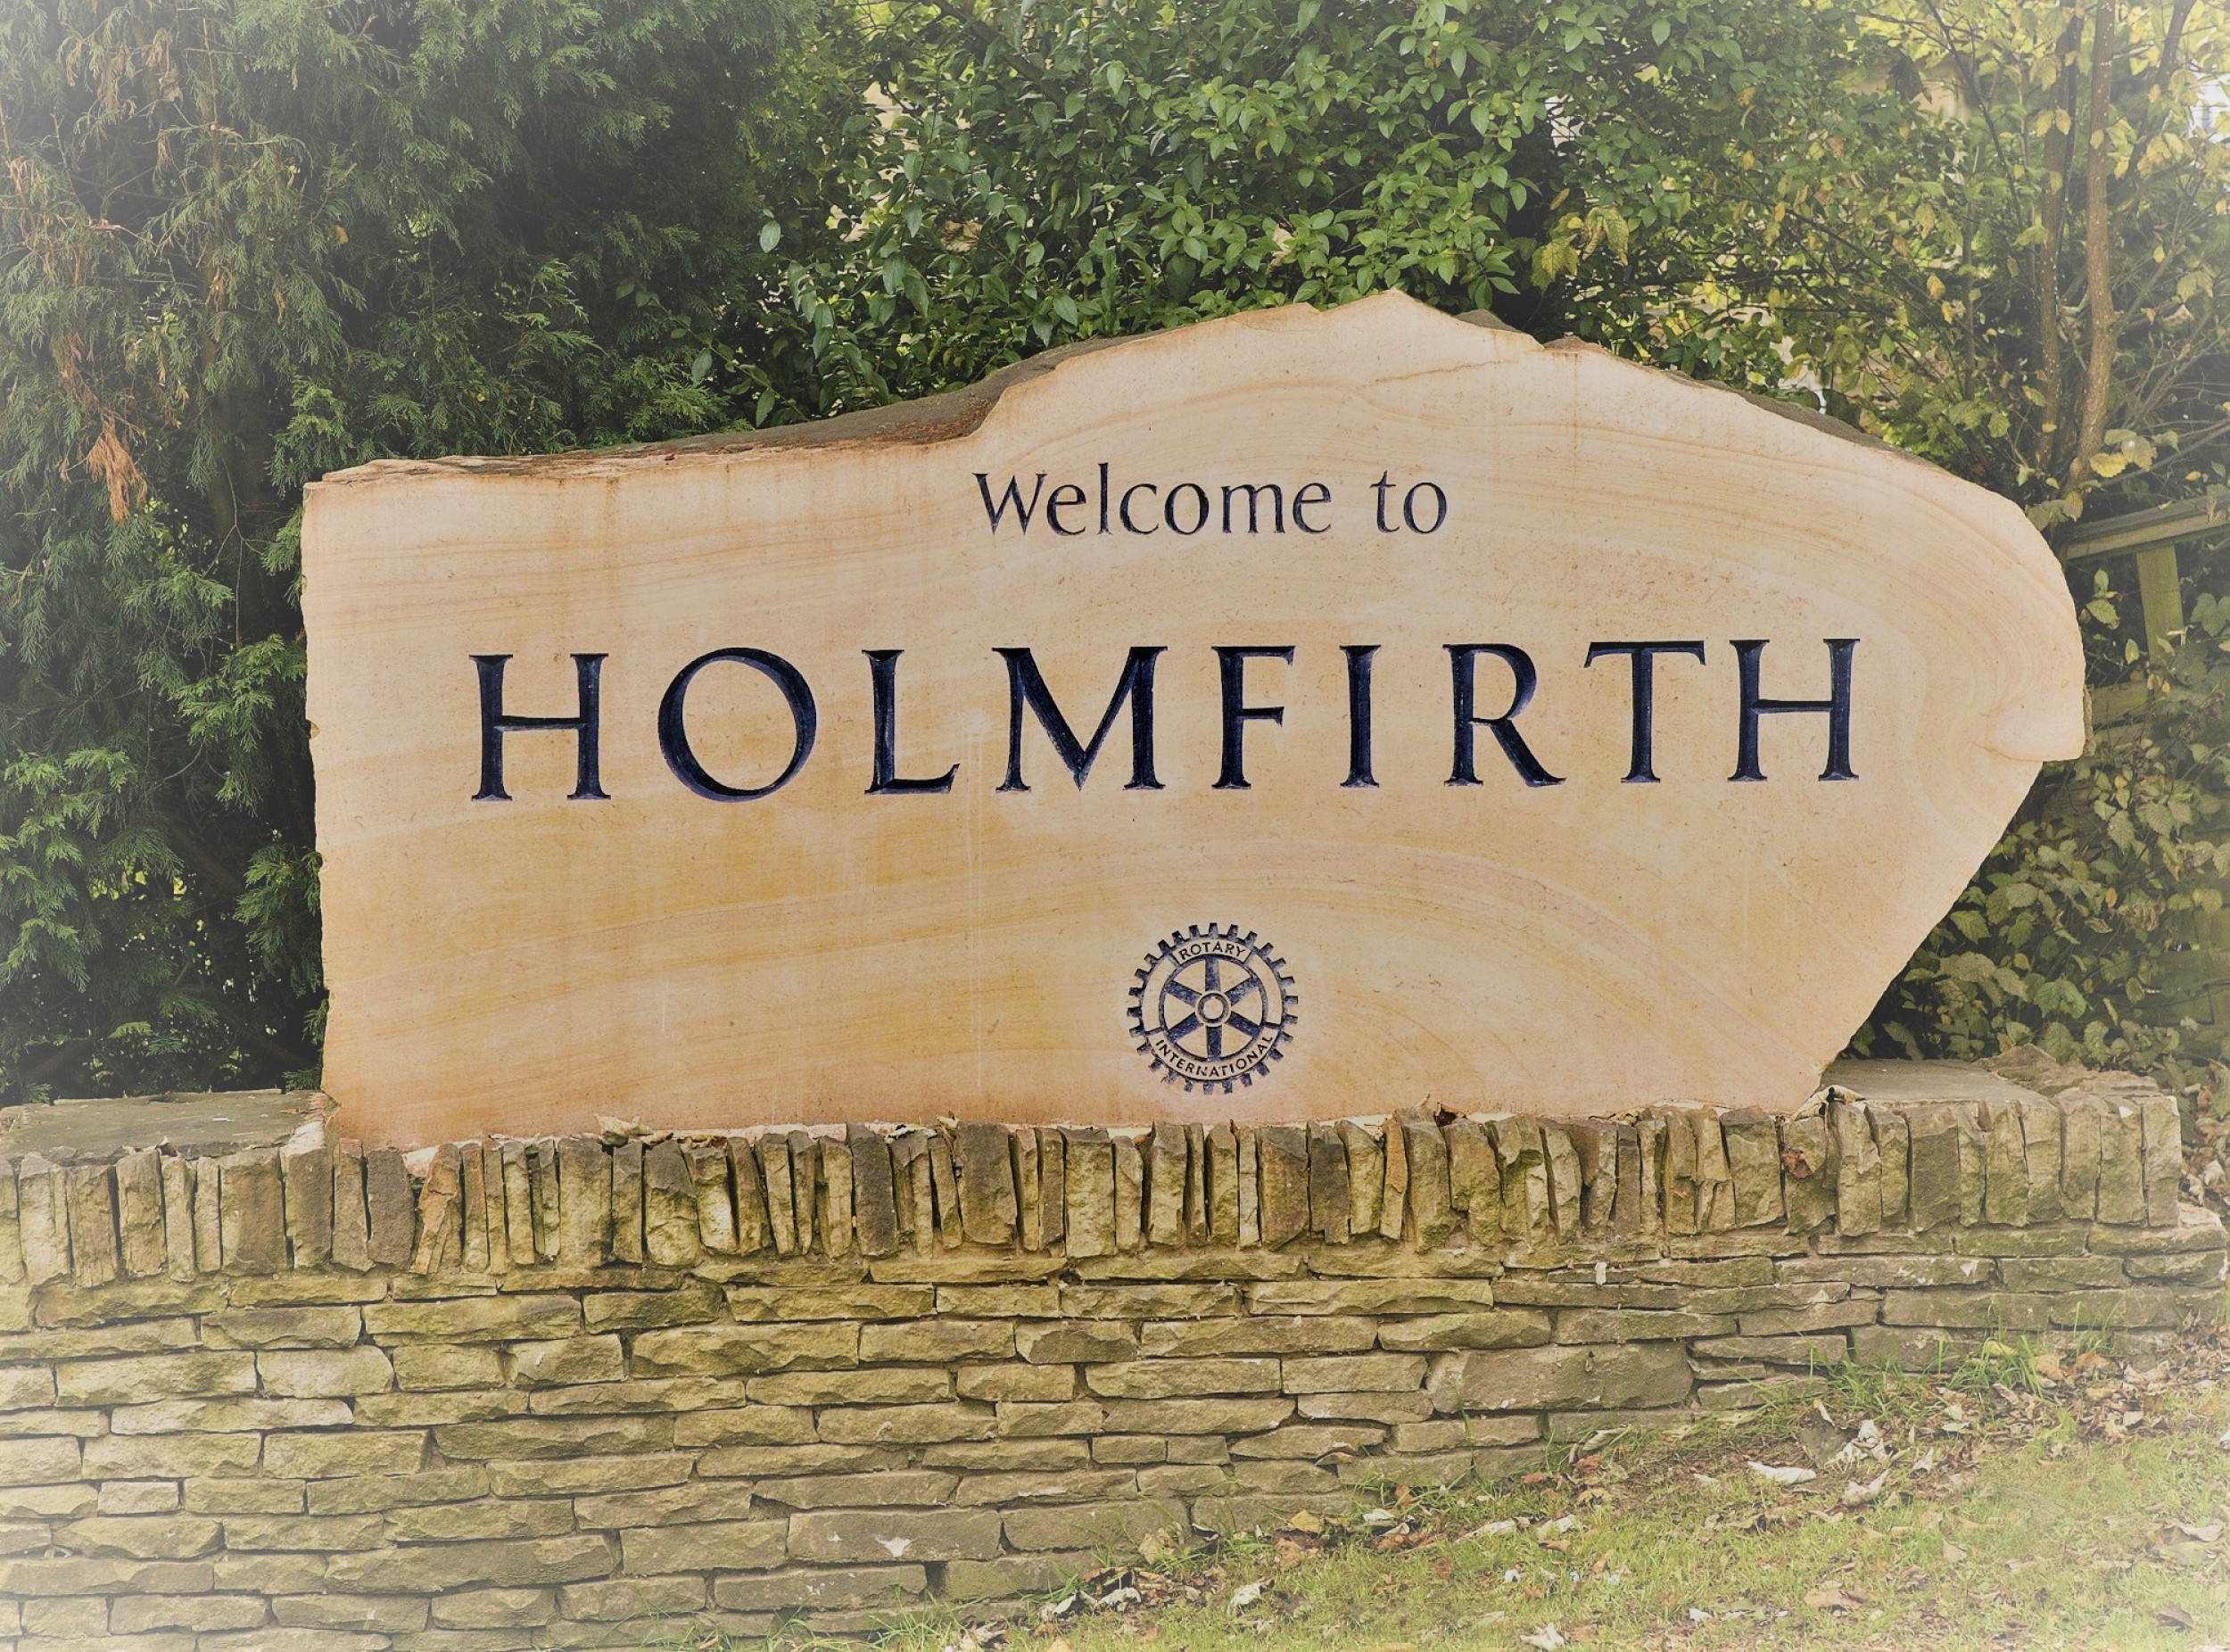 Everything you need to know about Holmfirth